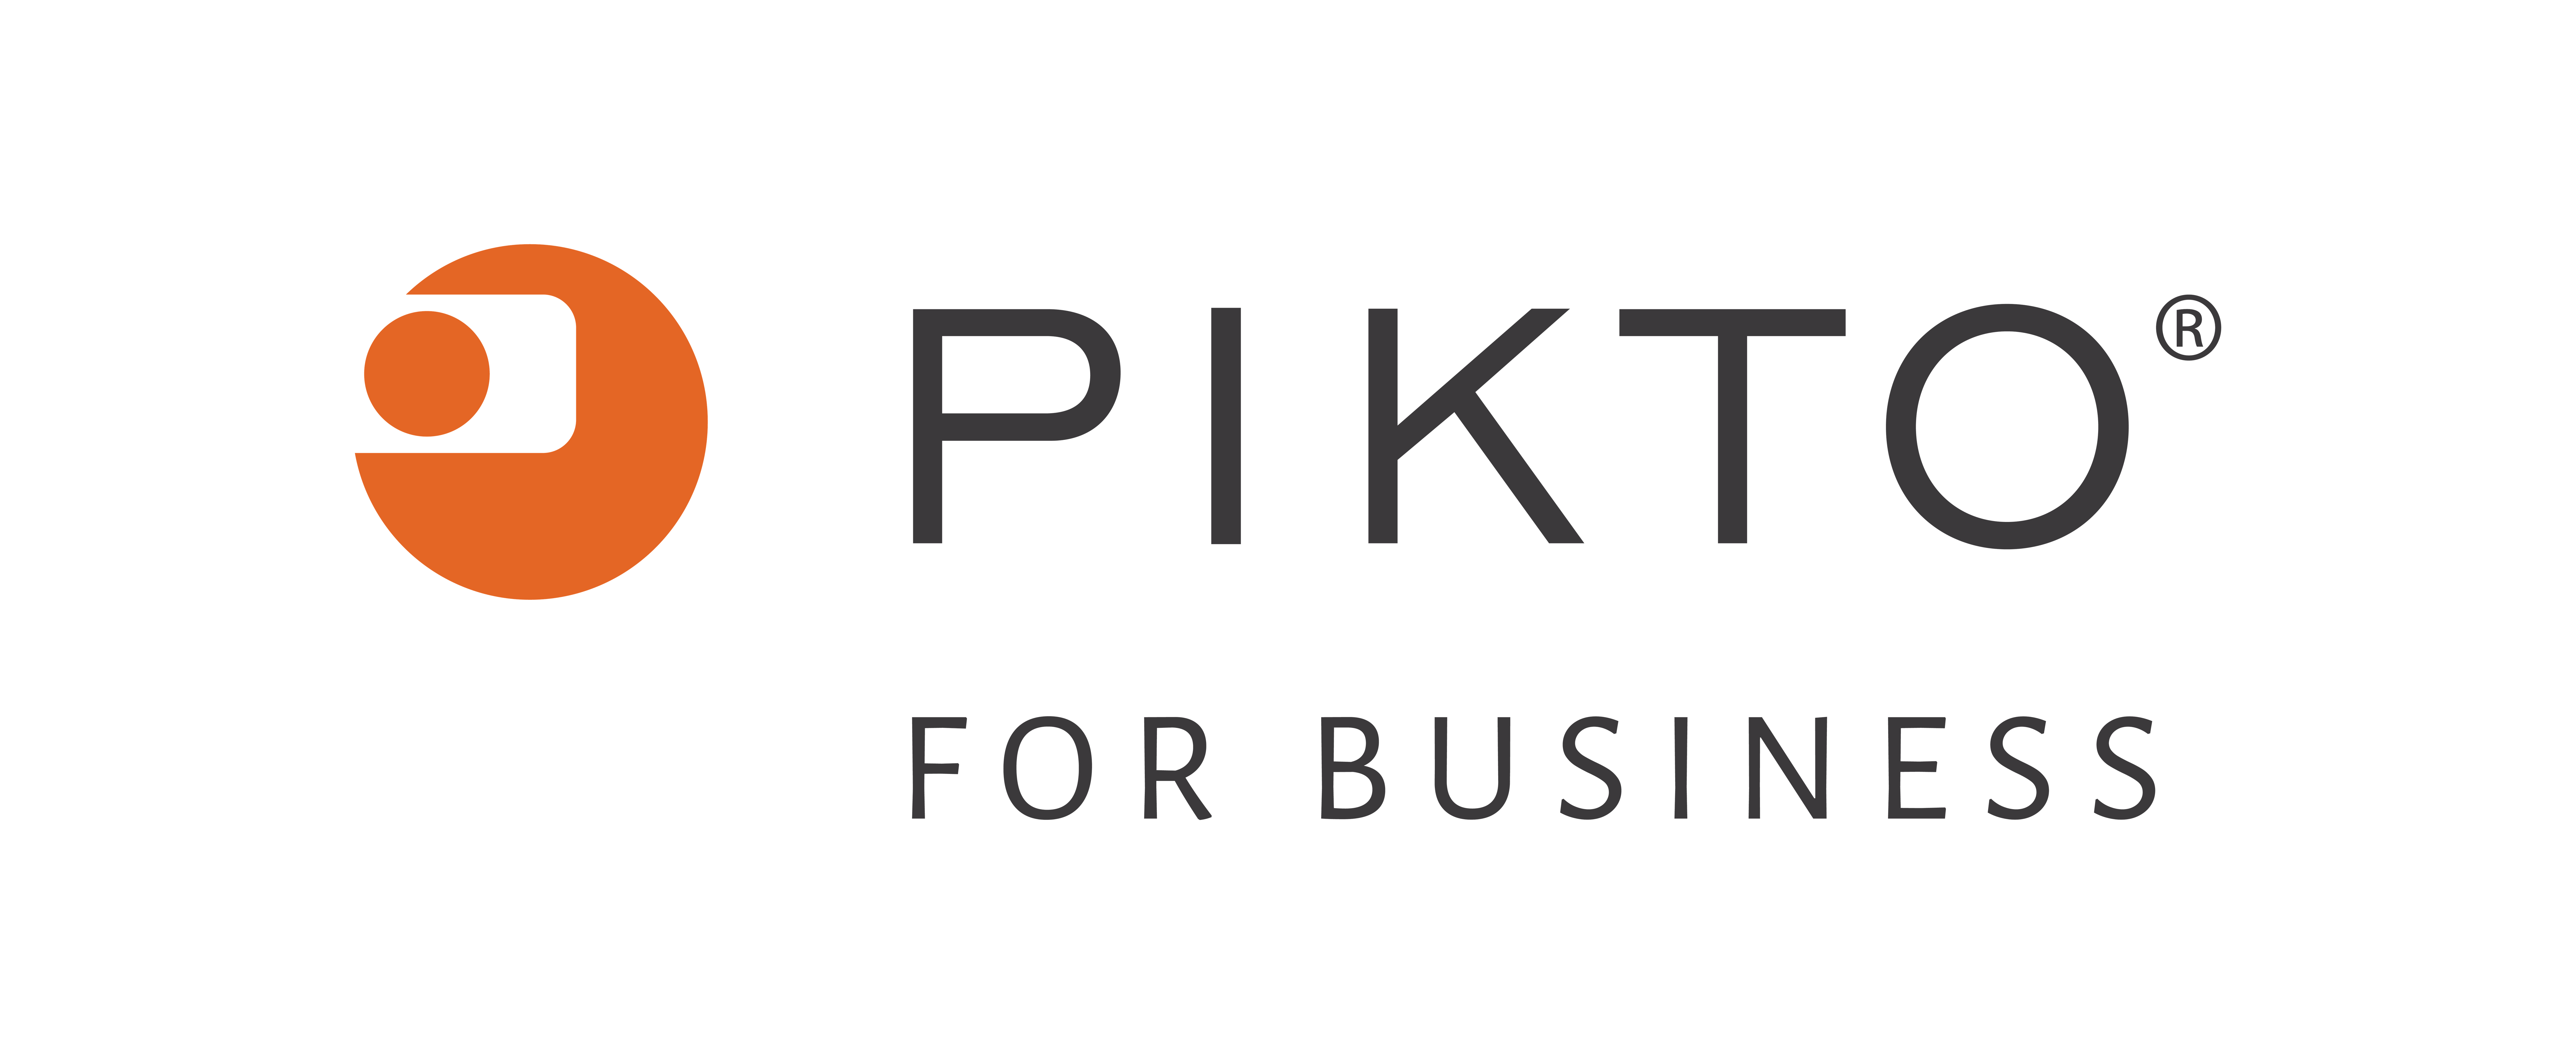 Pikto for Business